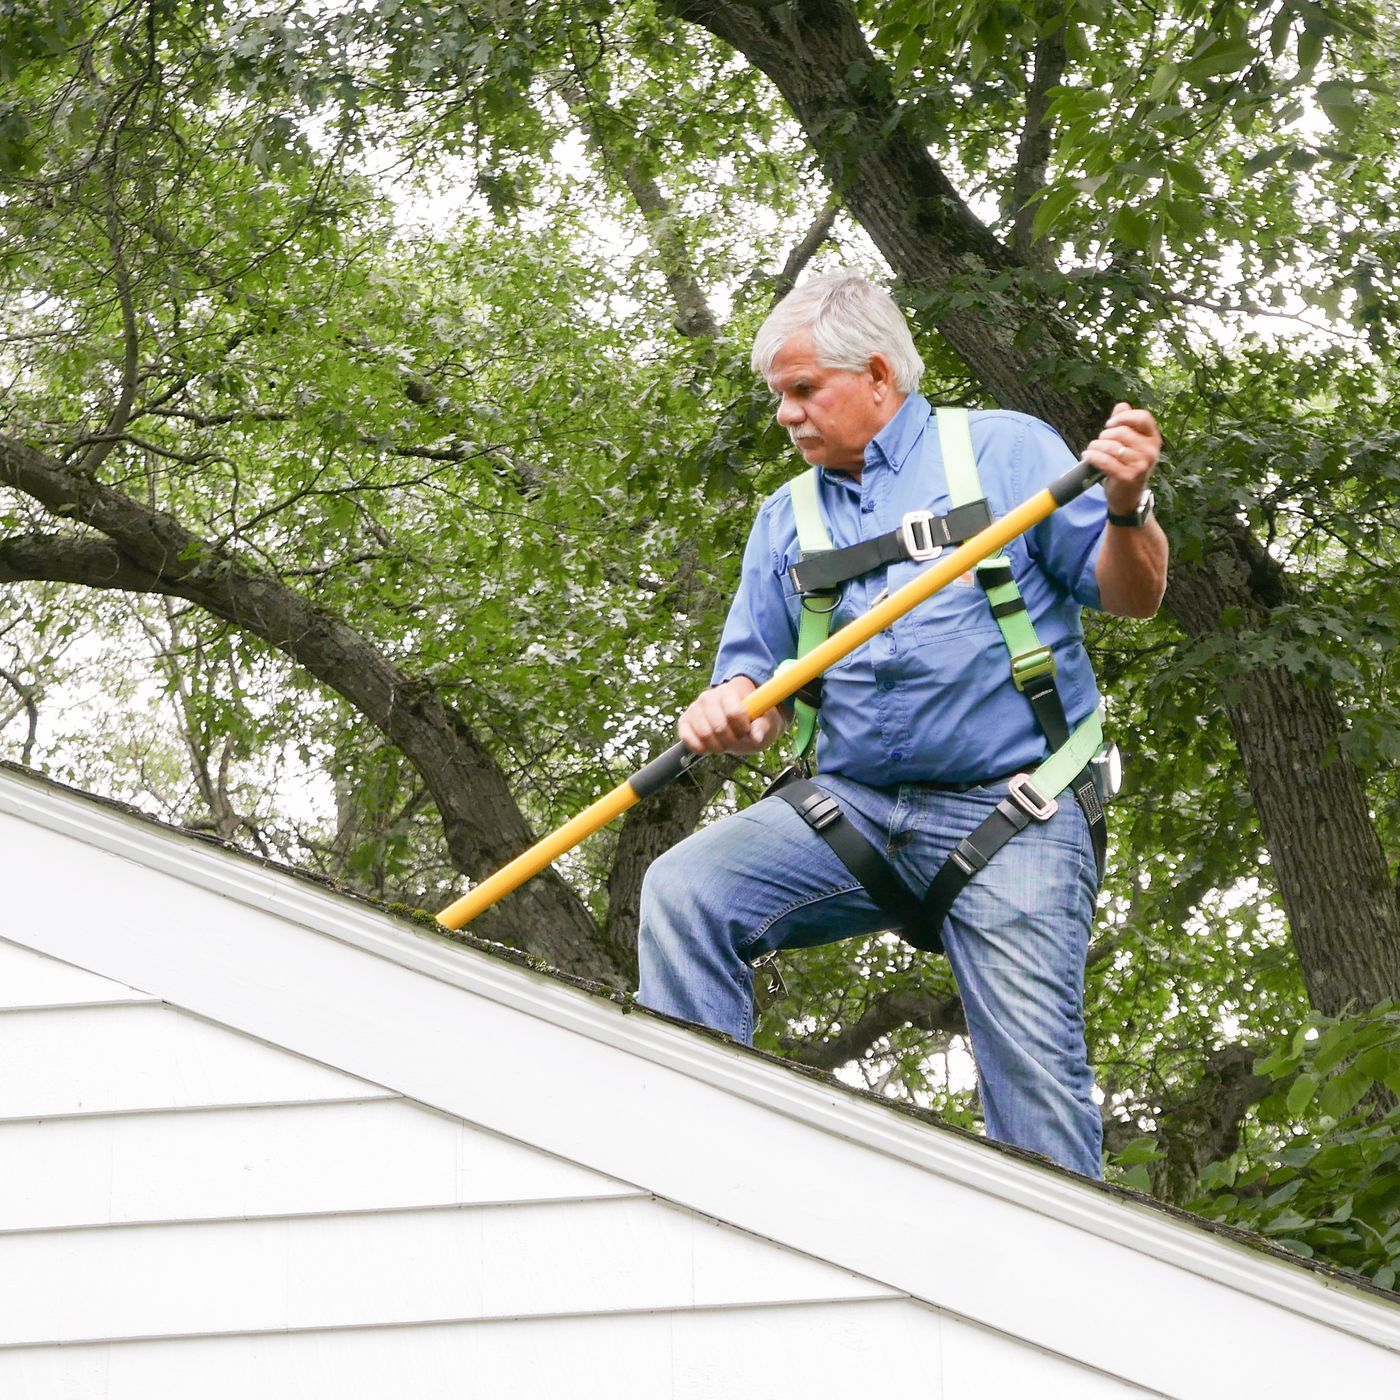 Home Warranty Roof Leak Coverage Basics This Old House